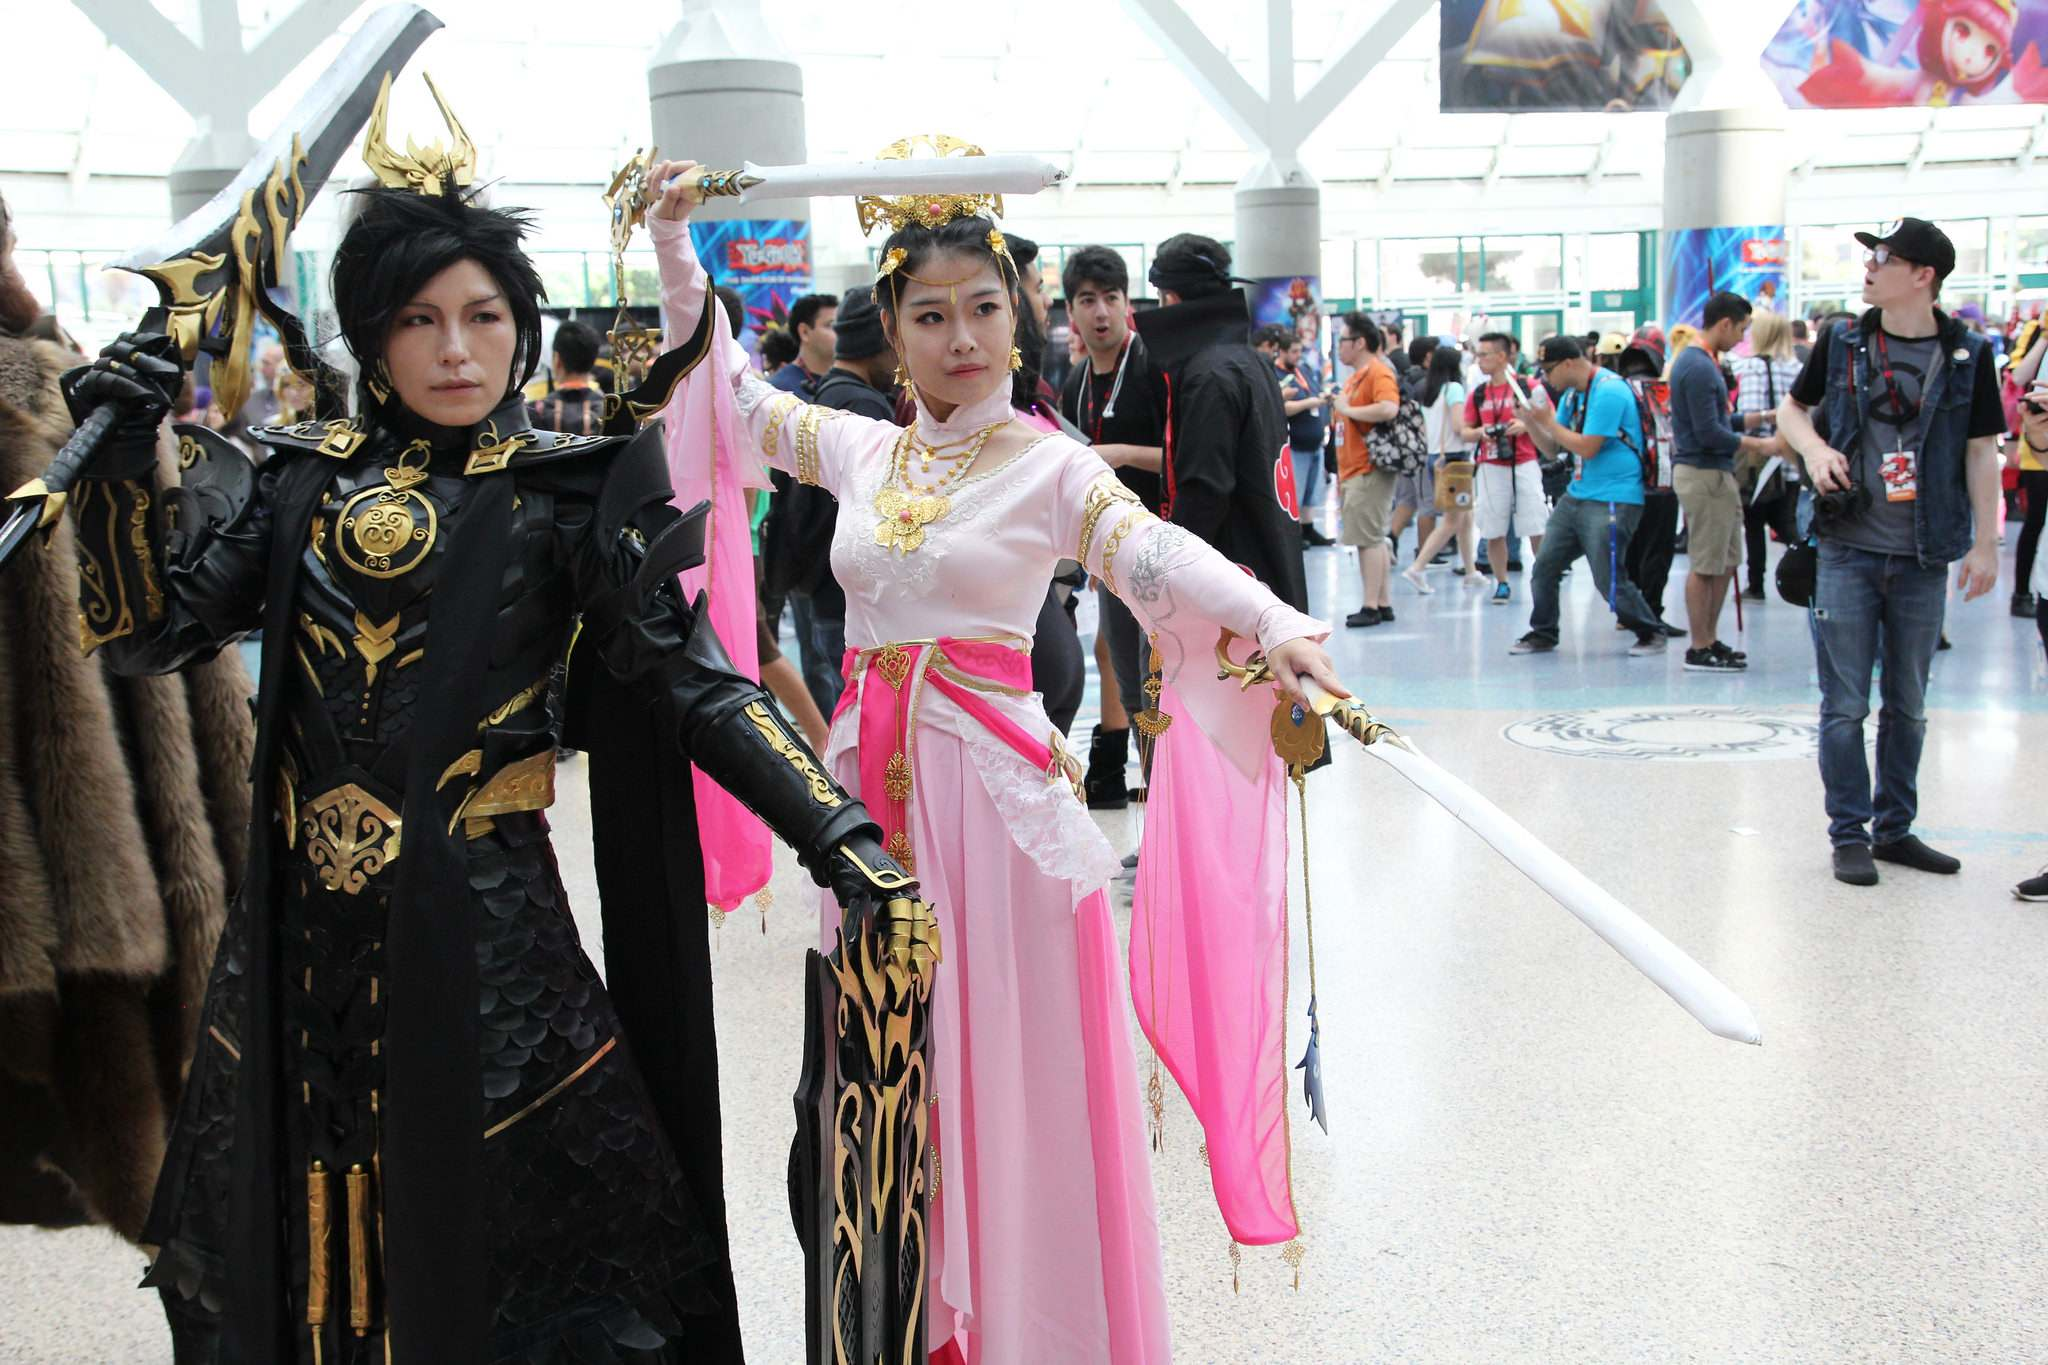 ax2016 Anime Expo 2016 in Los Angeles Convention Center